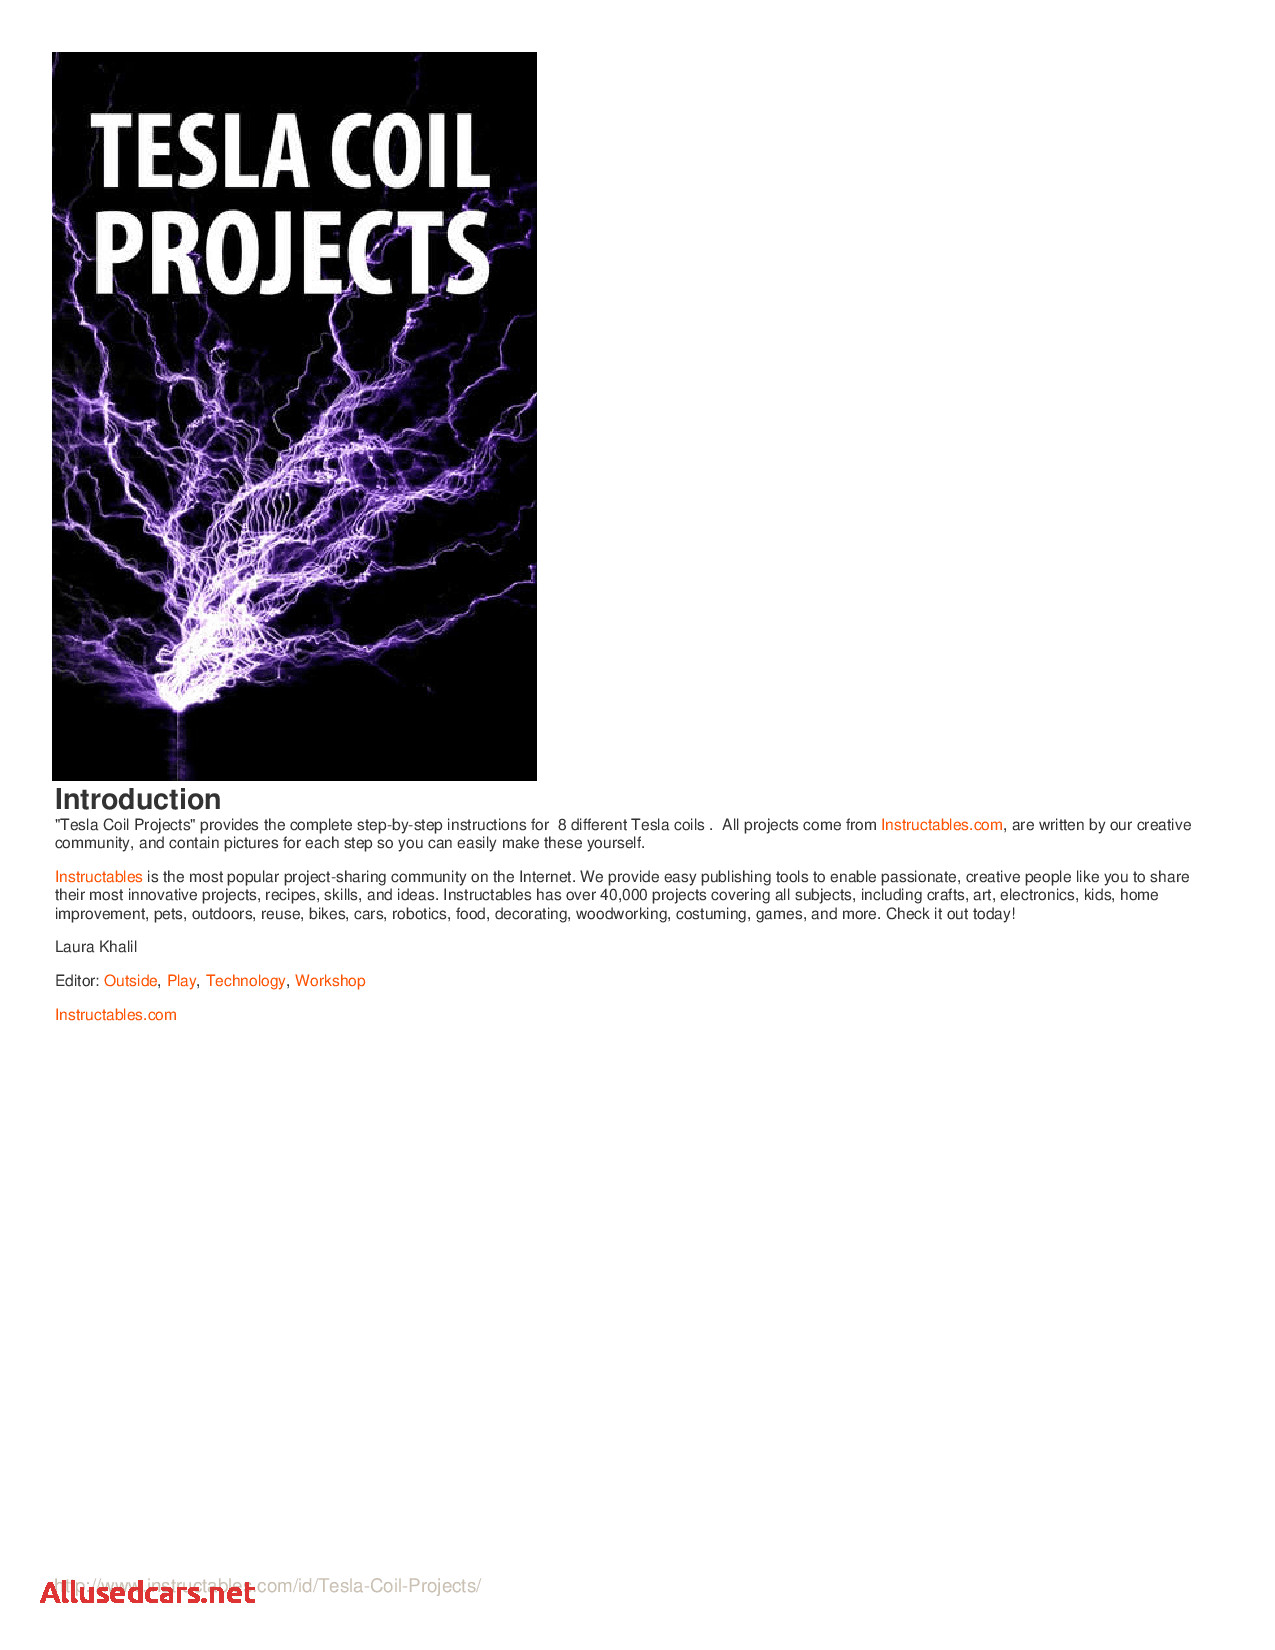 Are Tesla Coils Dangerous Lovely Tesla Coil Projects Tesla Coil Projects Docsity